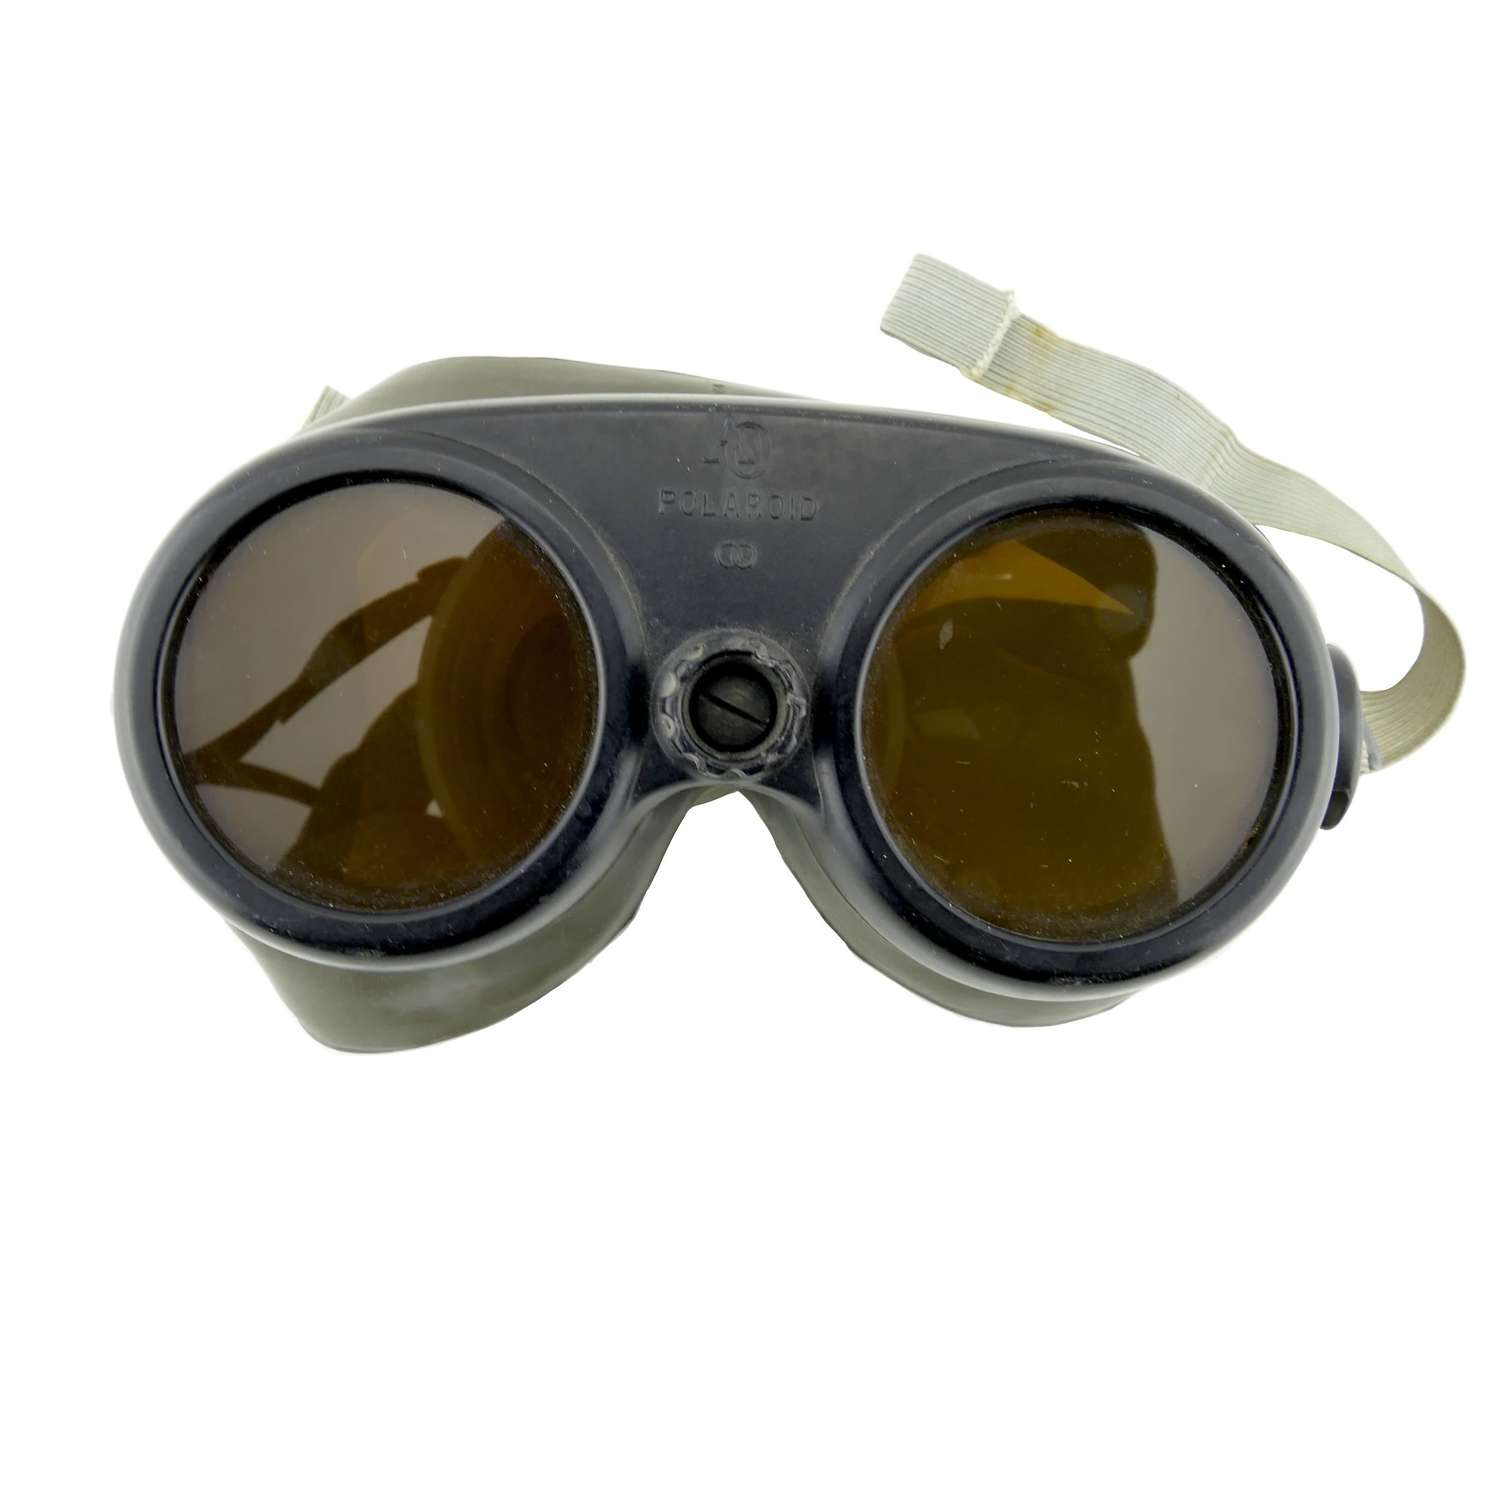 USAAF goggle, variable density